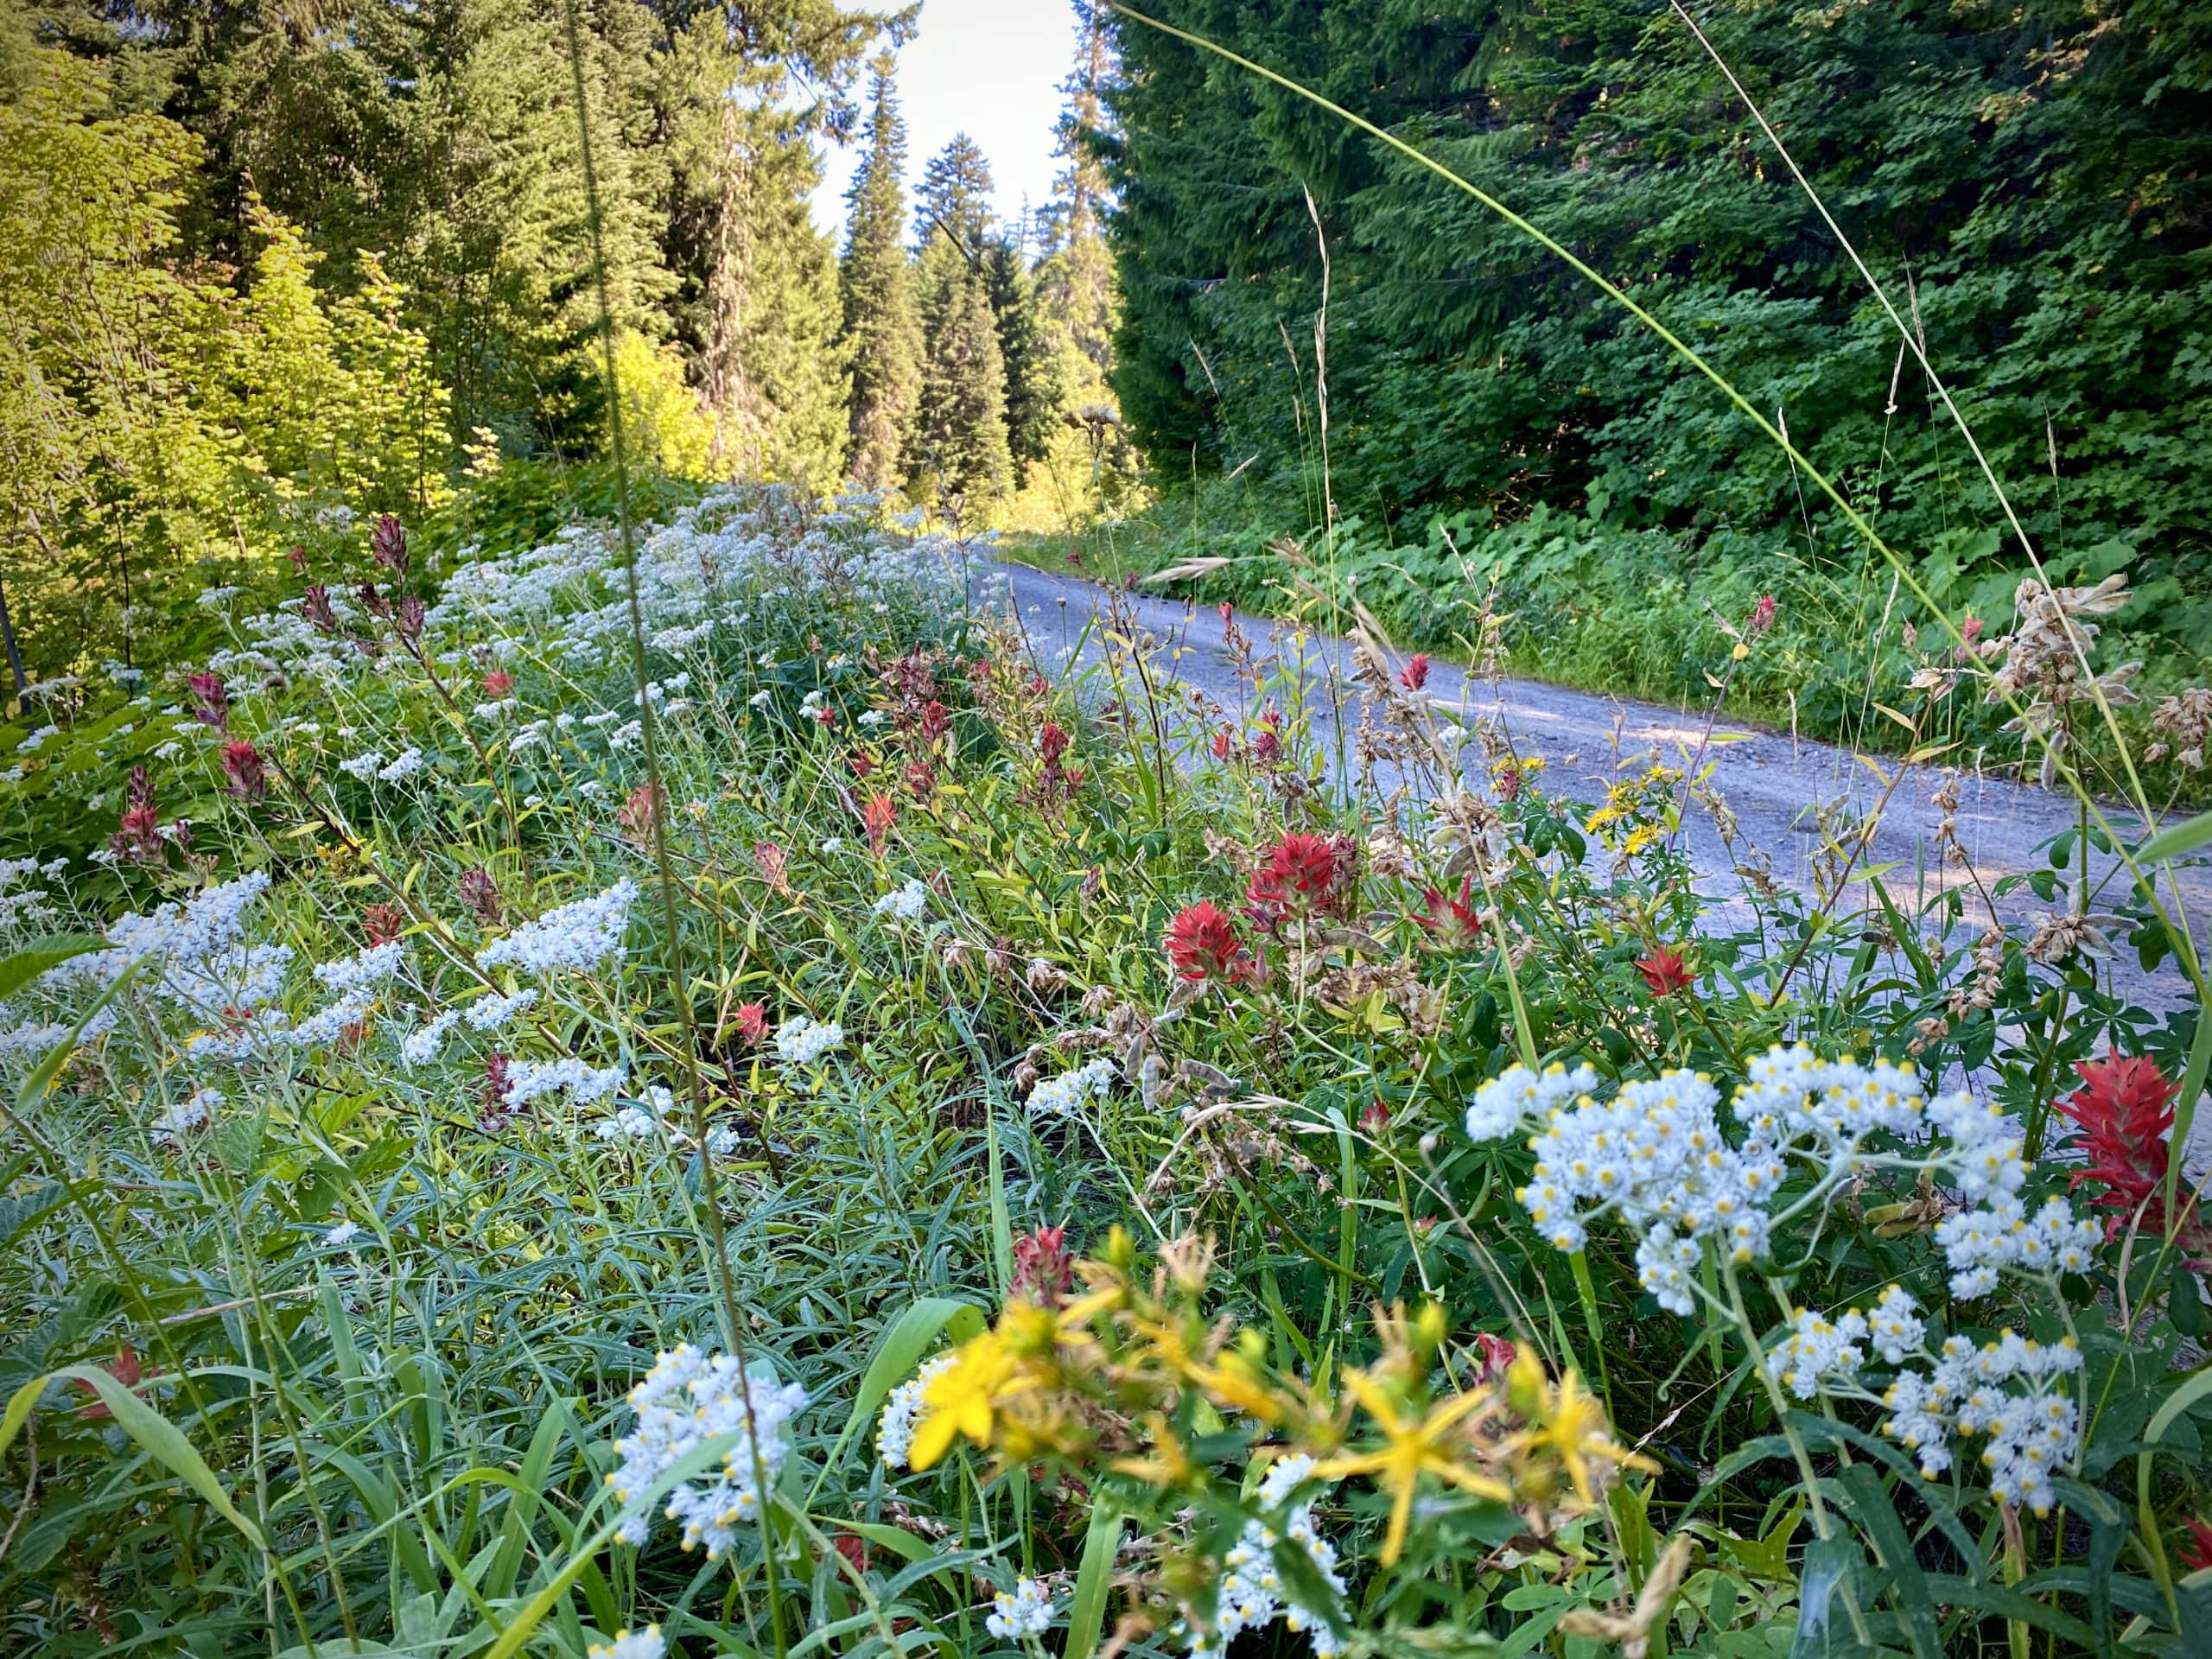 Red, white, and yellow flowers at Holland Meadow in the Willamette National Forest.